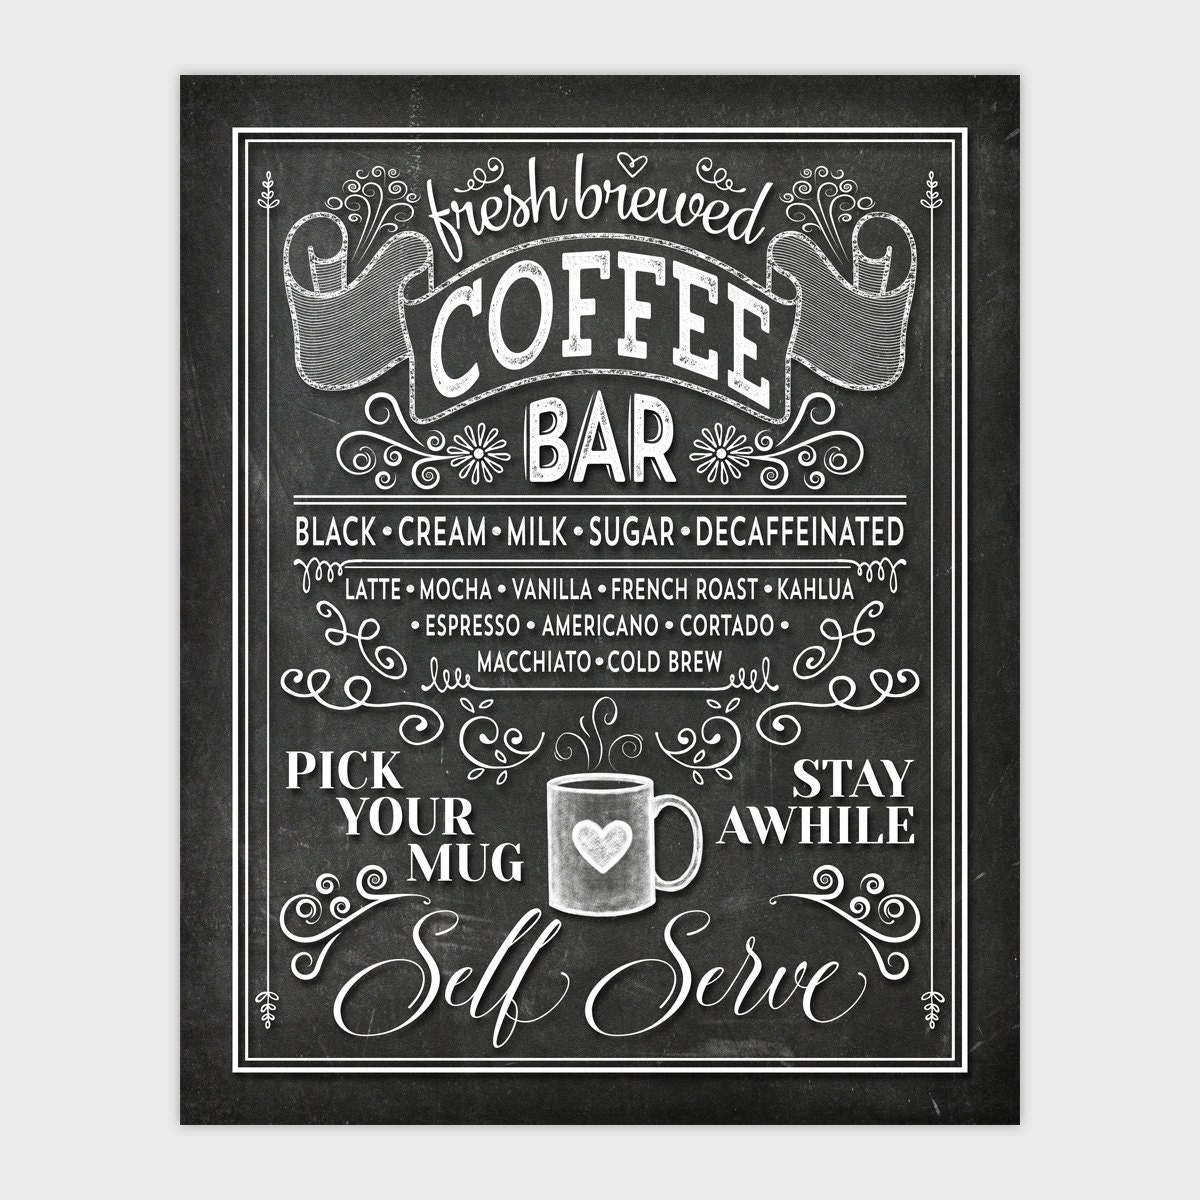 BEST Chalkboard Lettering Tips + Tricks (With images ...  |Coffee Chalk Art